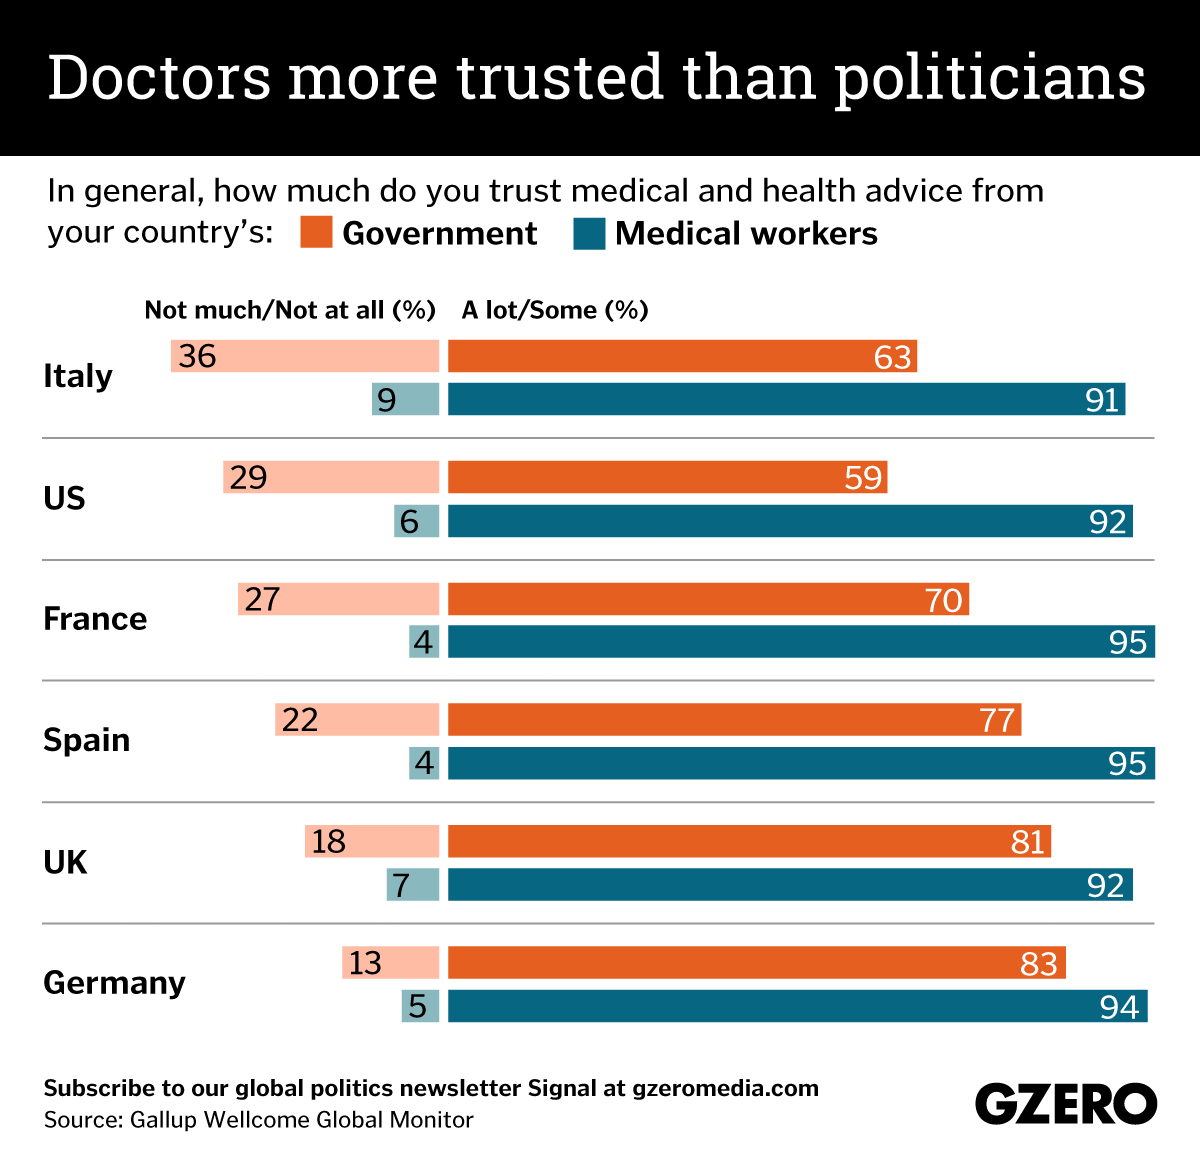 The Graphic Truth: Doctors more trusted than politicians